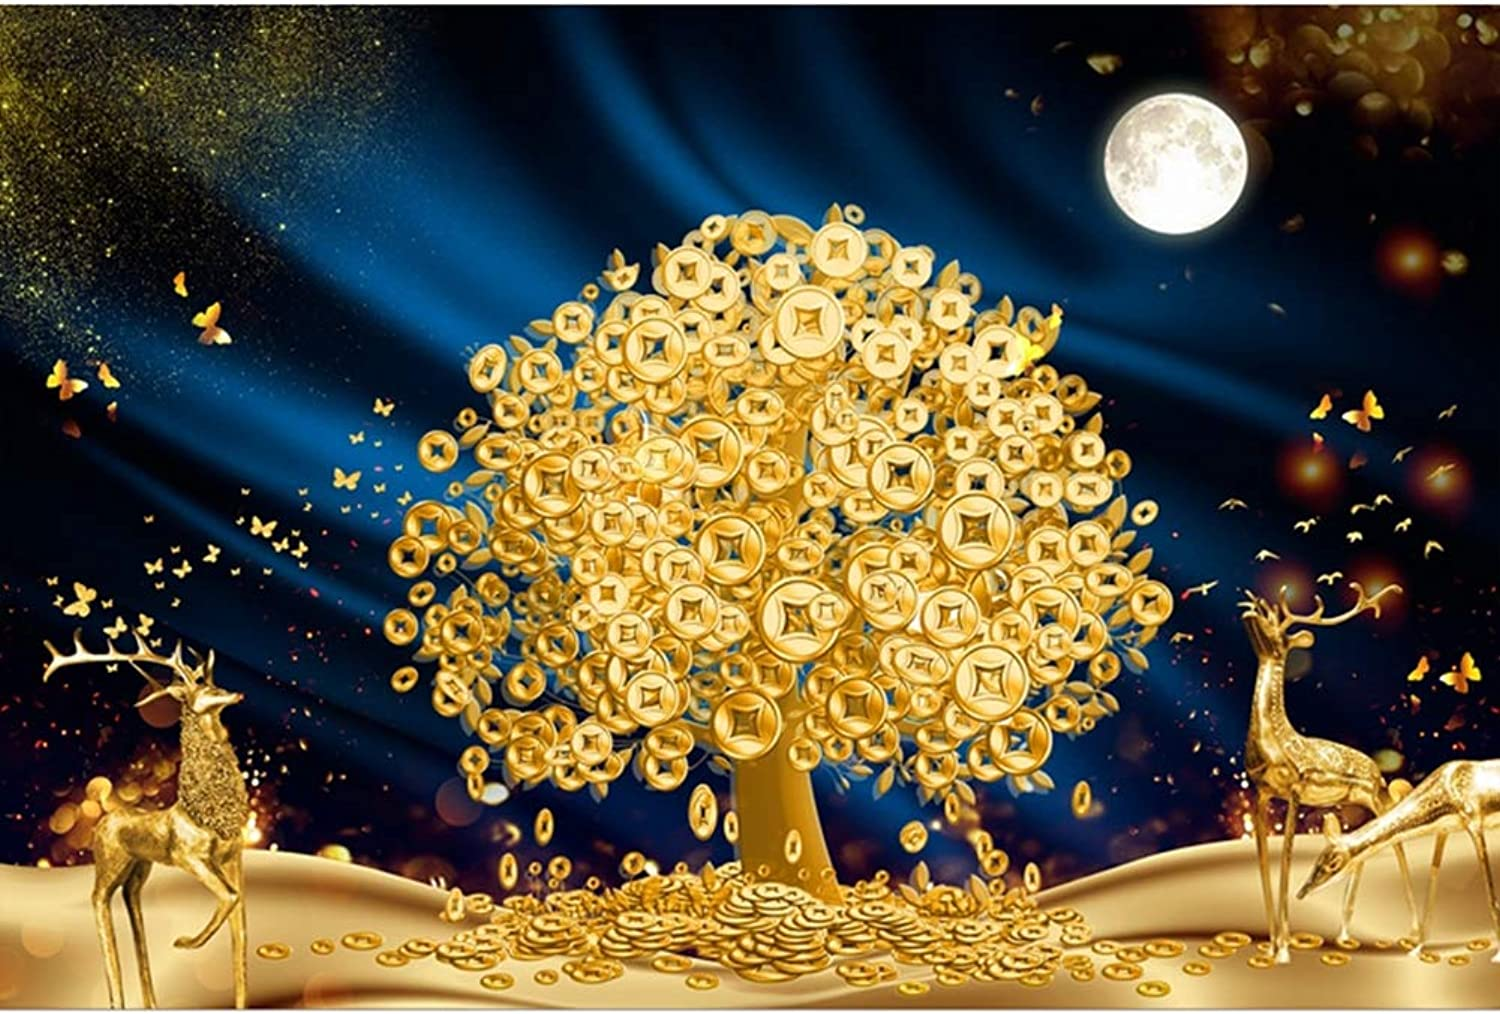 LINGNA Sviluppo di intelligenza dei Bambini Adulti Puzzle di Legno Immagine Albero d'oro DIY Assemblaggio divertimento Decompression gioco Home Art Decoration,1500PIECES